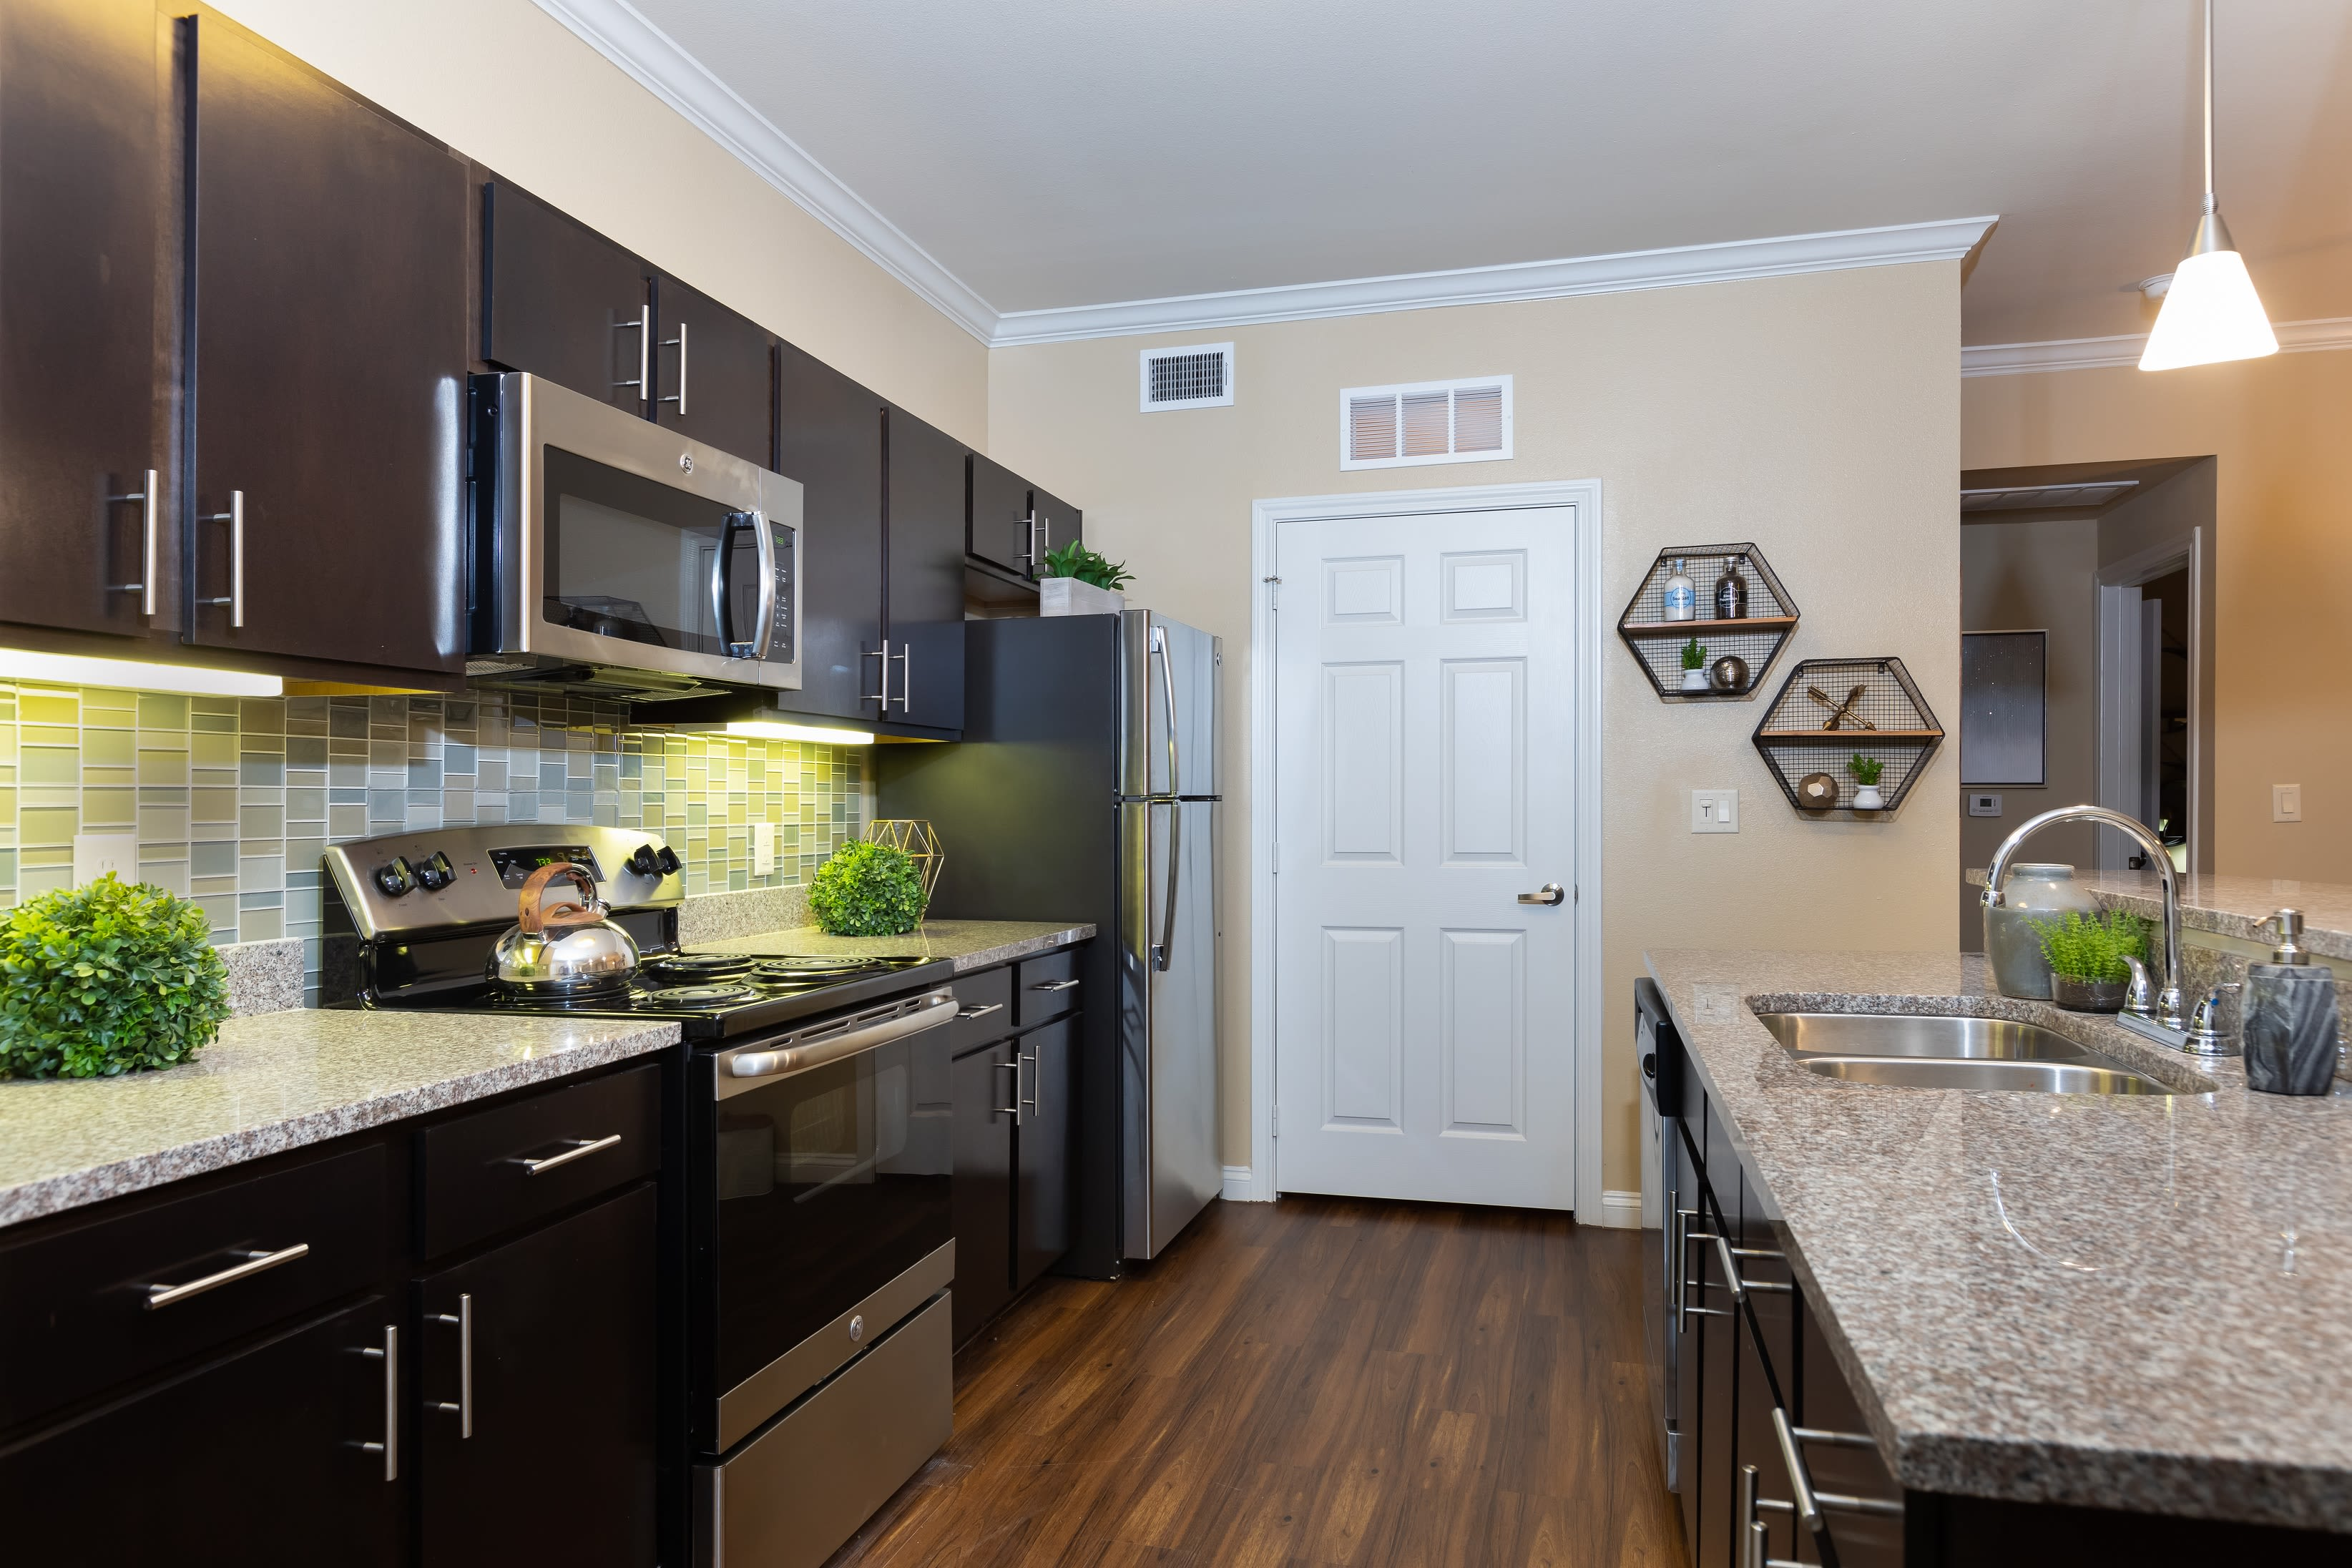 View virtual tour for 1 bedroom 1 bathroom home at Hilltops in Conroe, Texas